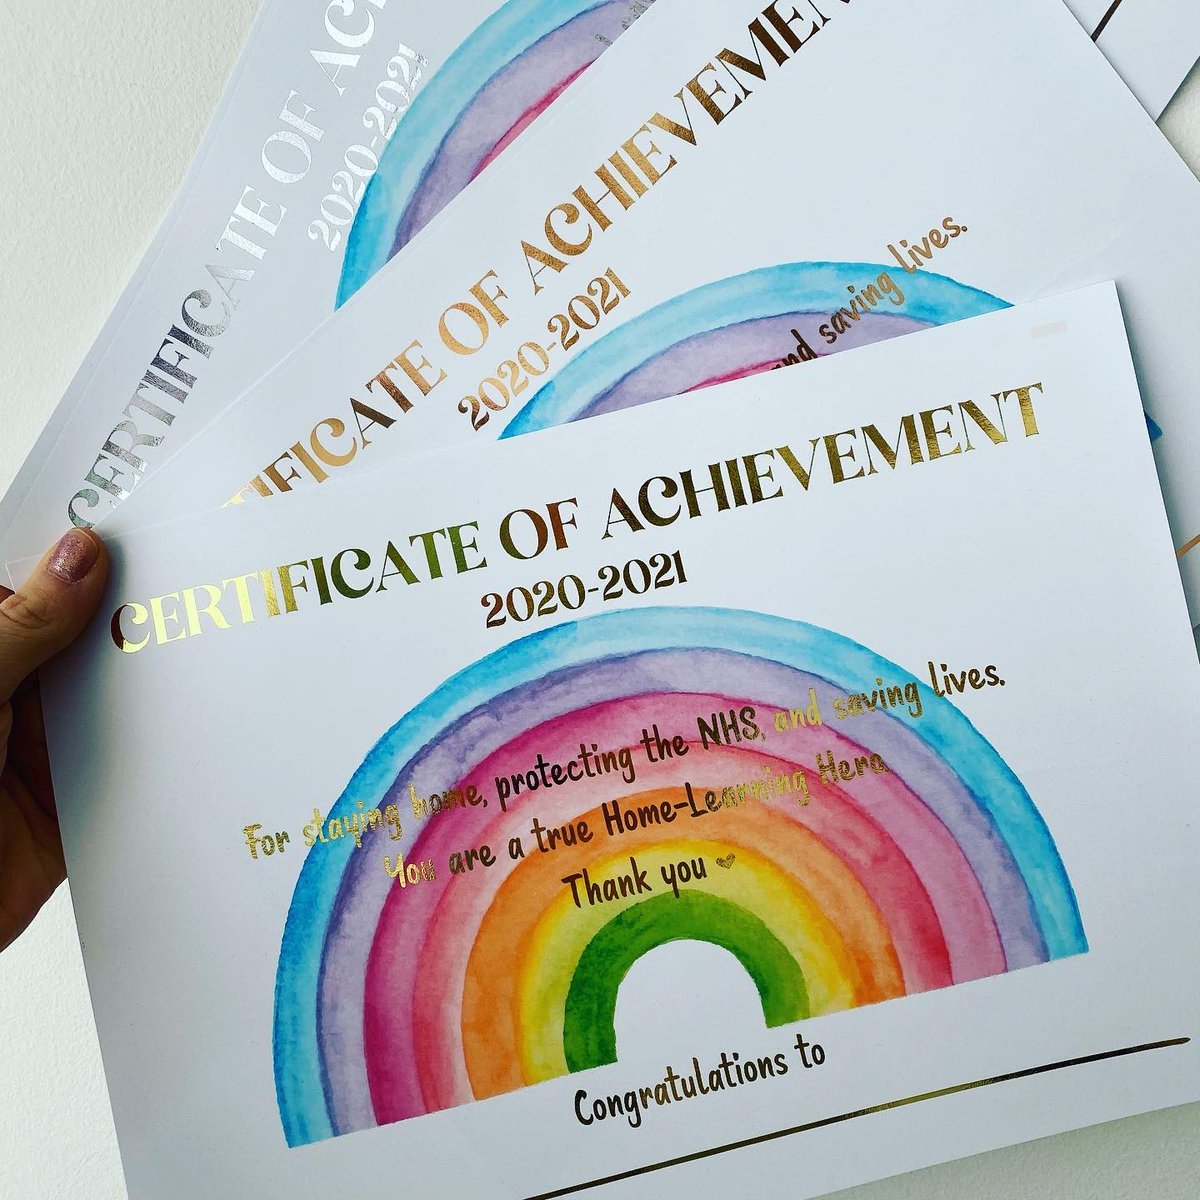 Celebrating the end of home learning with Lockdown Certificates 🌈 available in gold, silver and rose gold. (£5 each) I think the parents deserve one too... only 7 more sleeps to go!  #knaresborough #harrogate #homeschooling #nearlythere #lockdown2021 #shopsmall #shoplocal